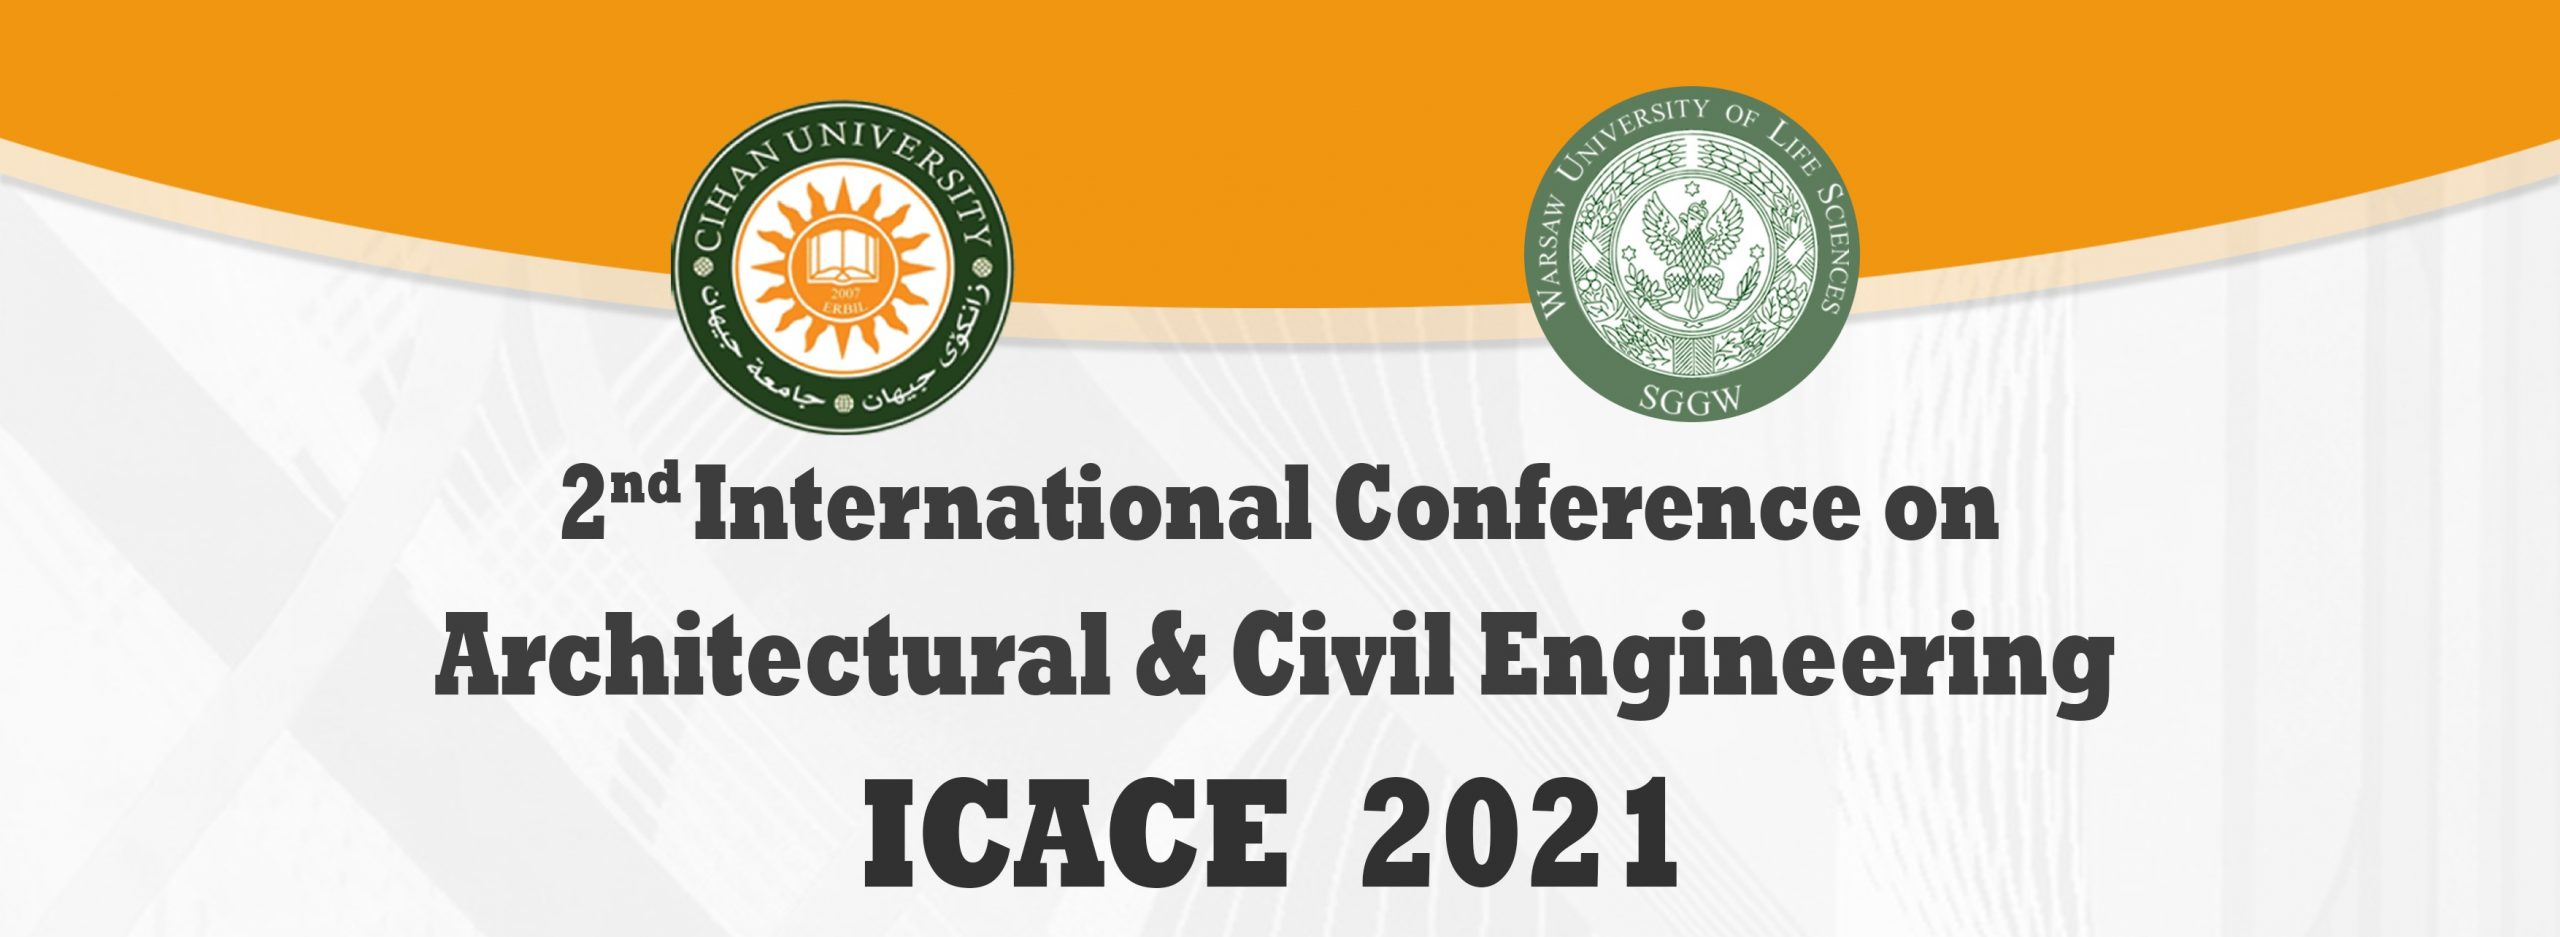 Cihan University-Erbil will hold the second international scientific conference for Architecture and Civil Engineering